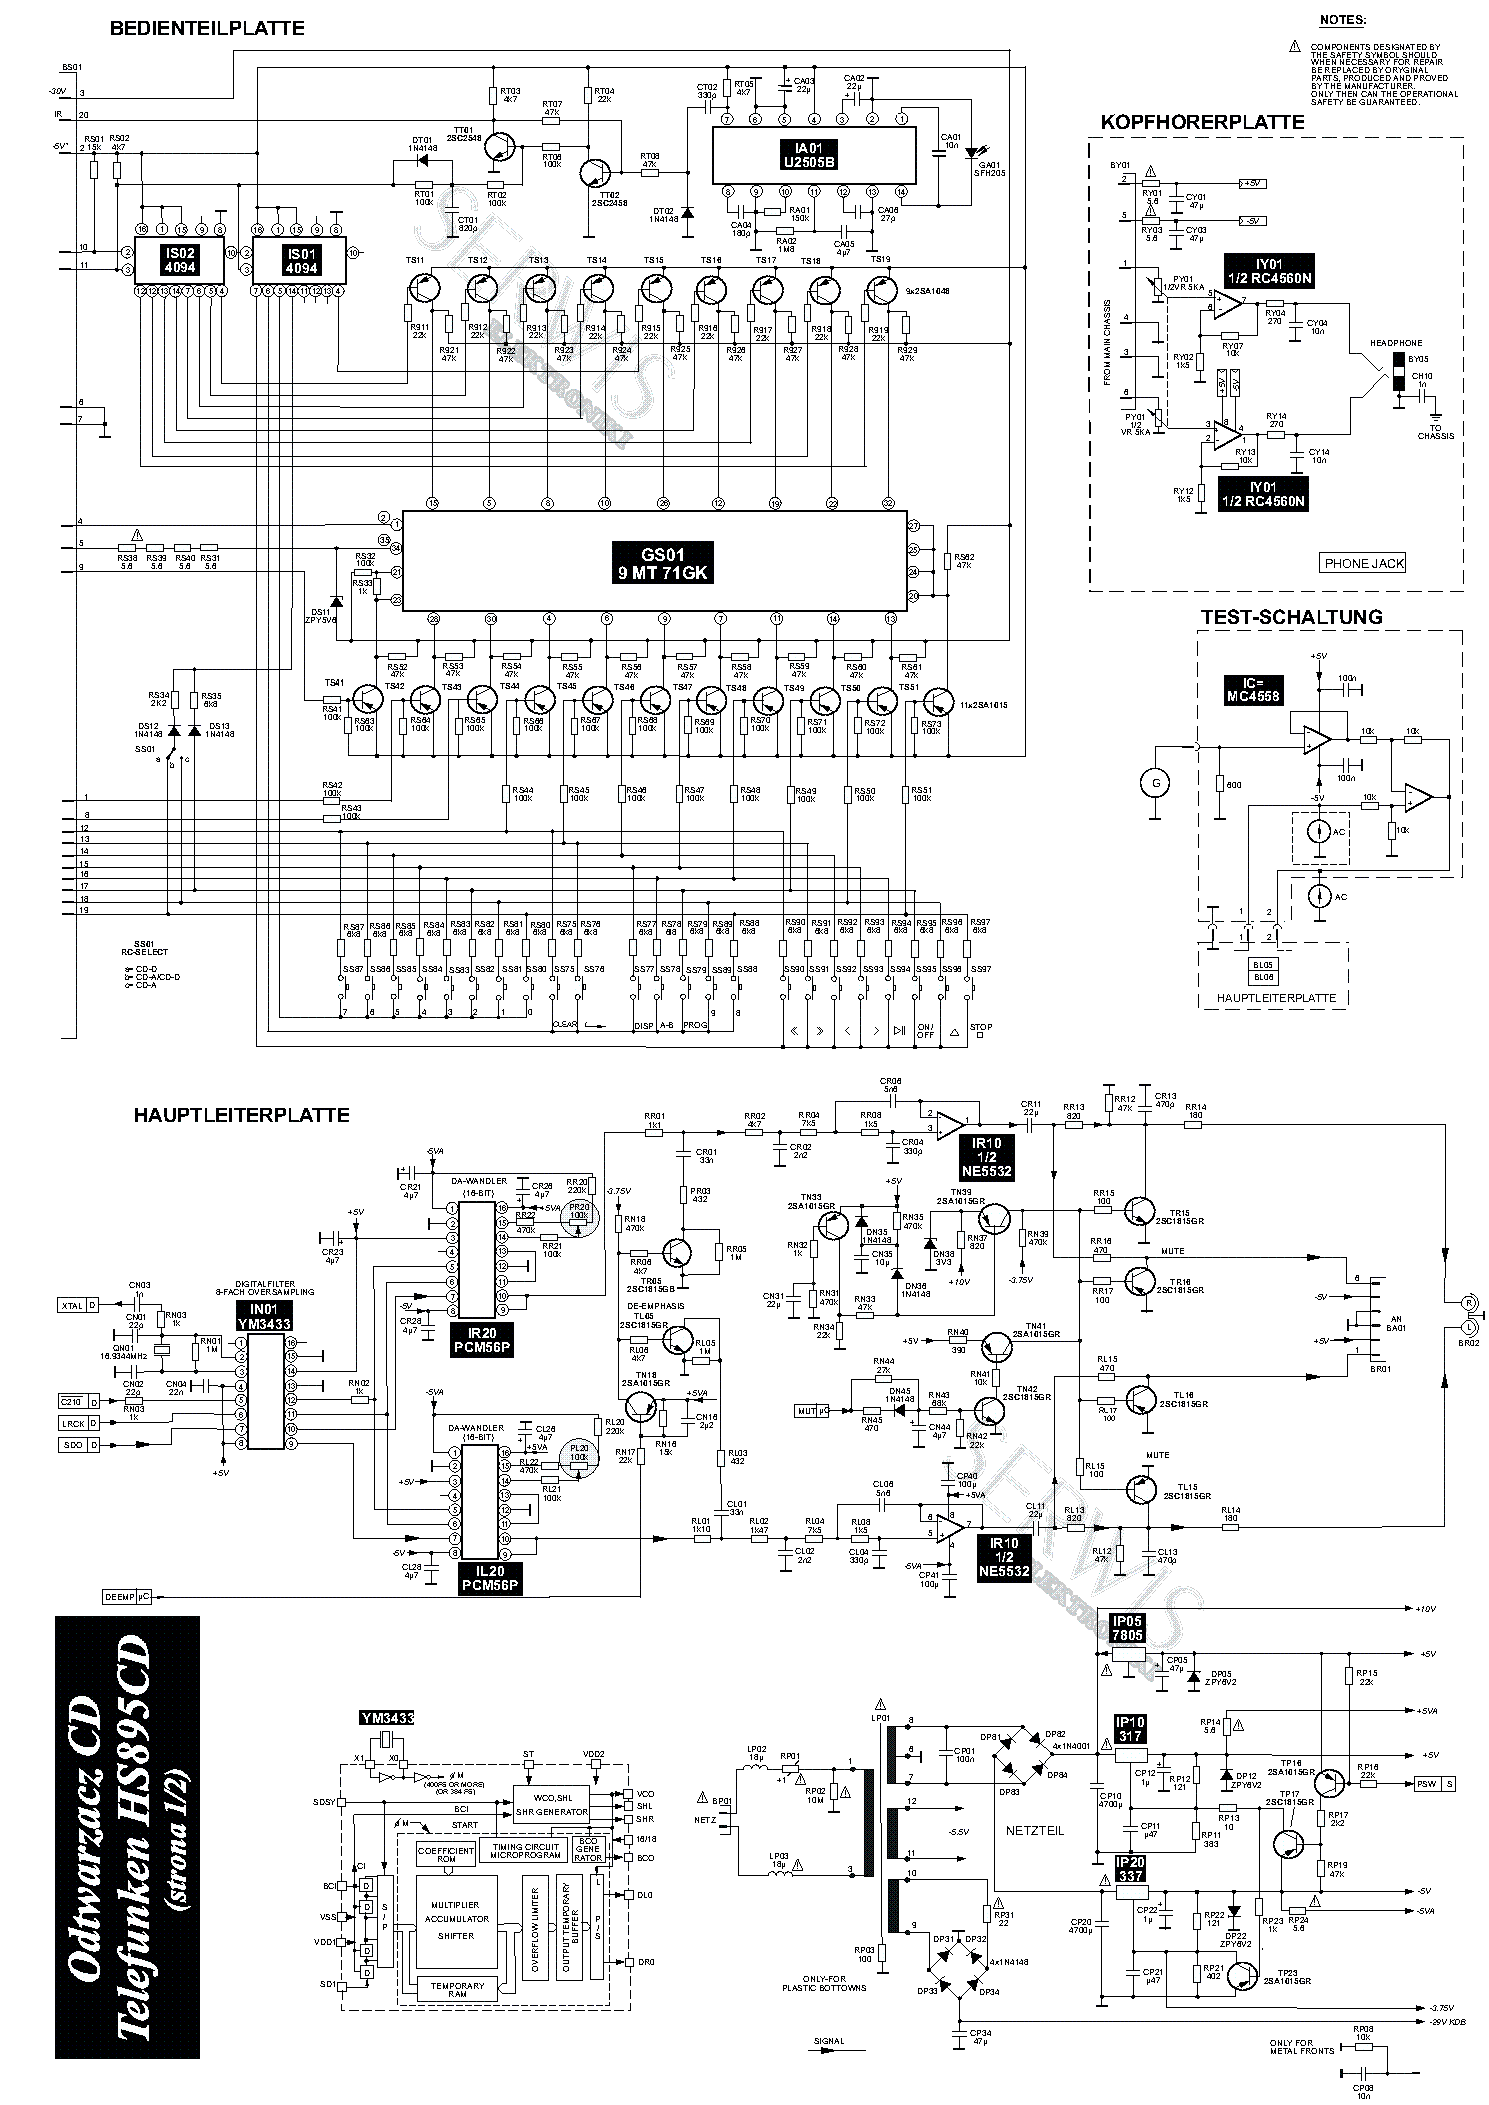 TELEFUNKEN HS895CD SCH Service Manual download, schematics